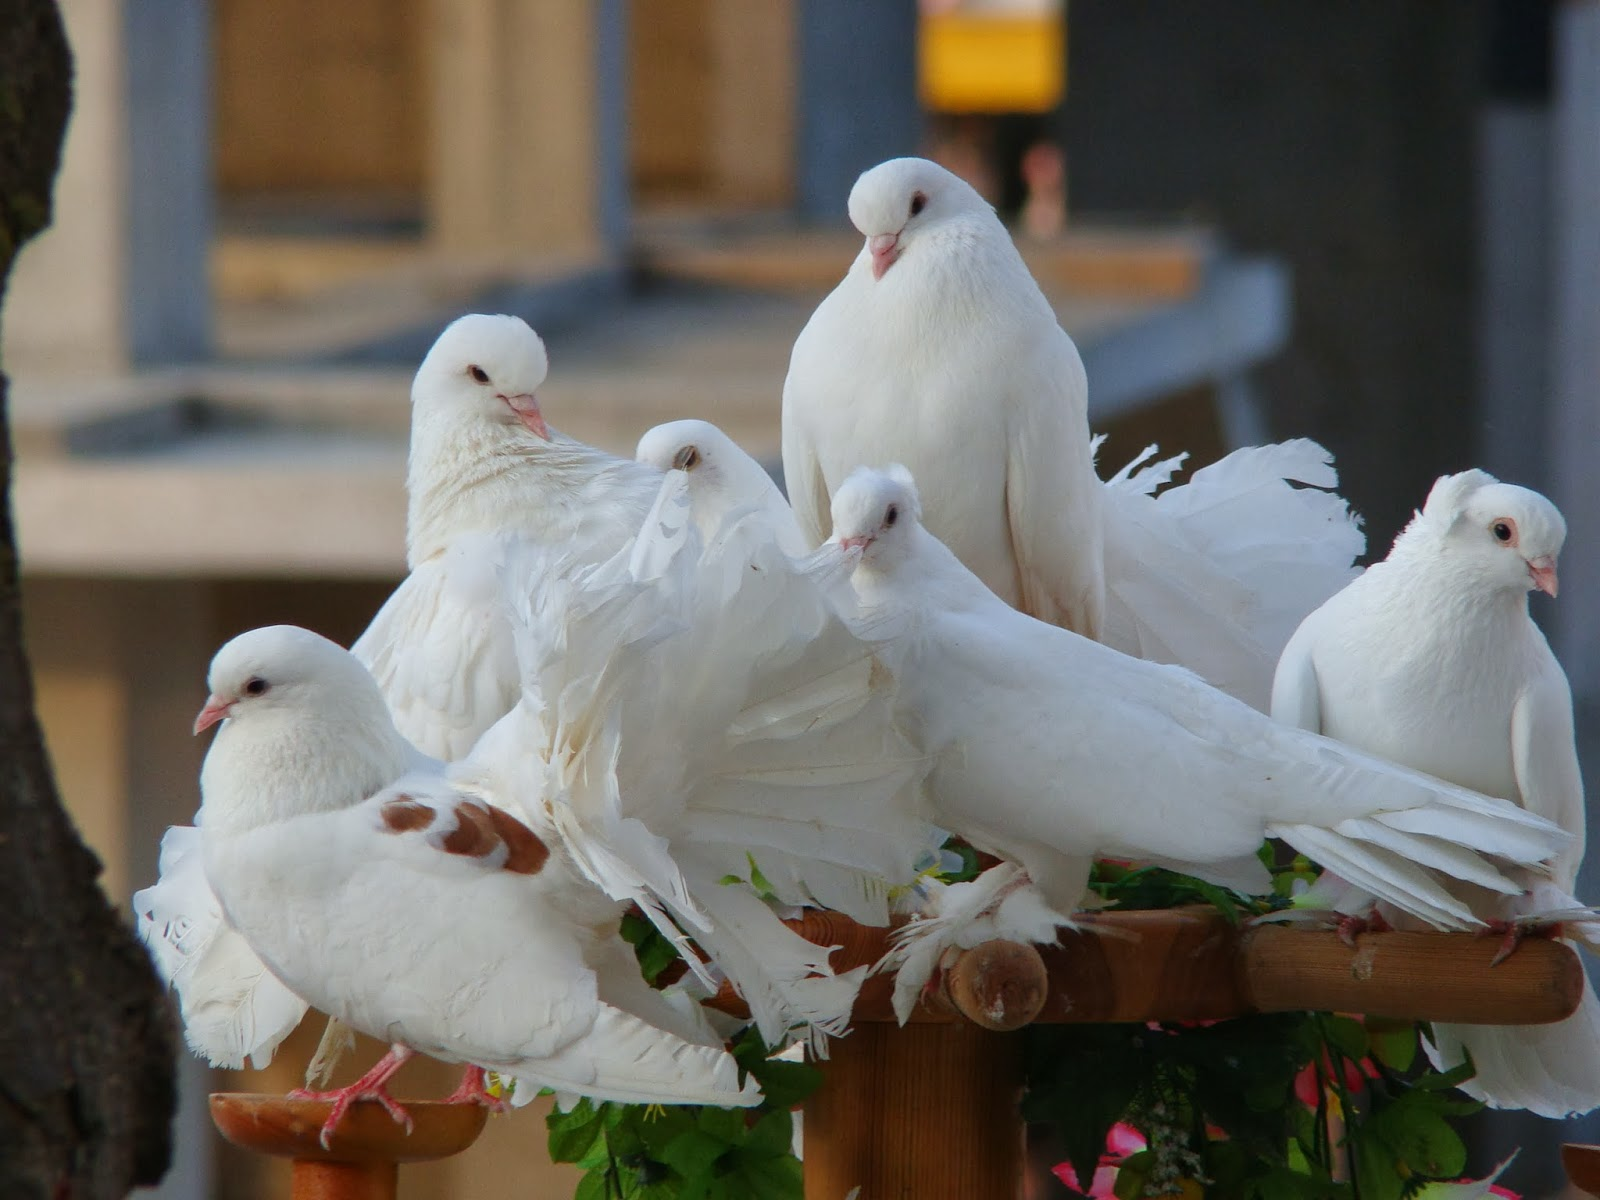 Beautiful And Dangerous Animals Birds Hd Wallpapers: 10 Most Beautiful Pigeon Birds Latest HD Wallpapers 2013